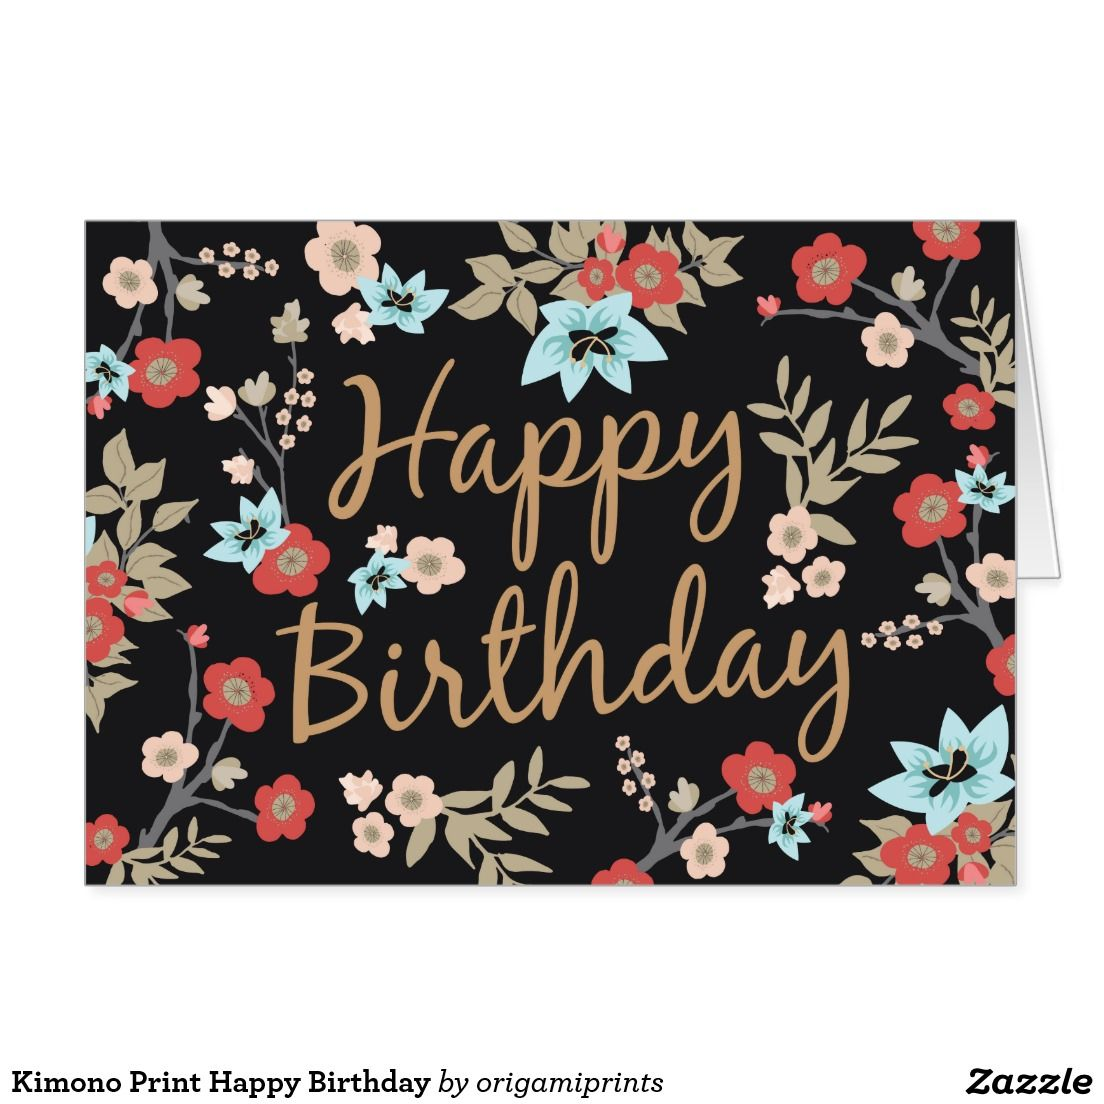 Kimono Print Happy Birthday Greeting Card